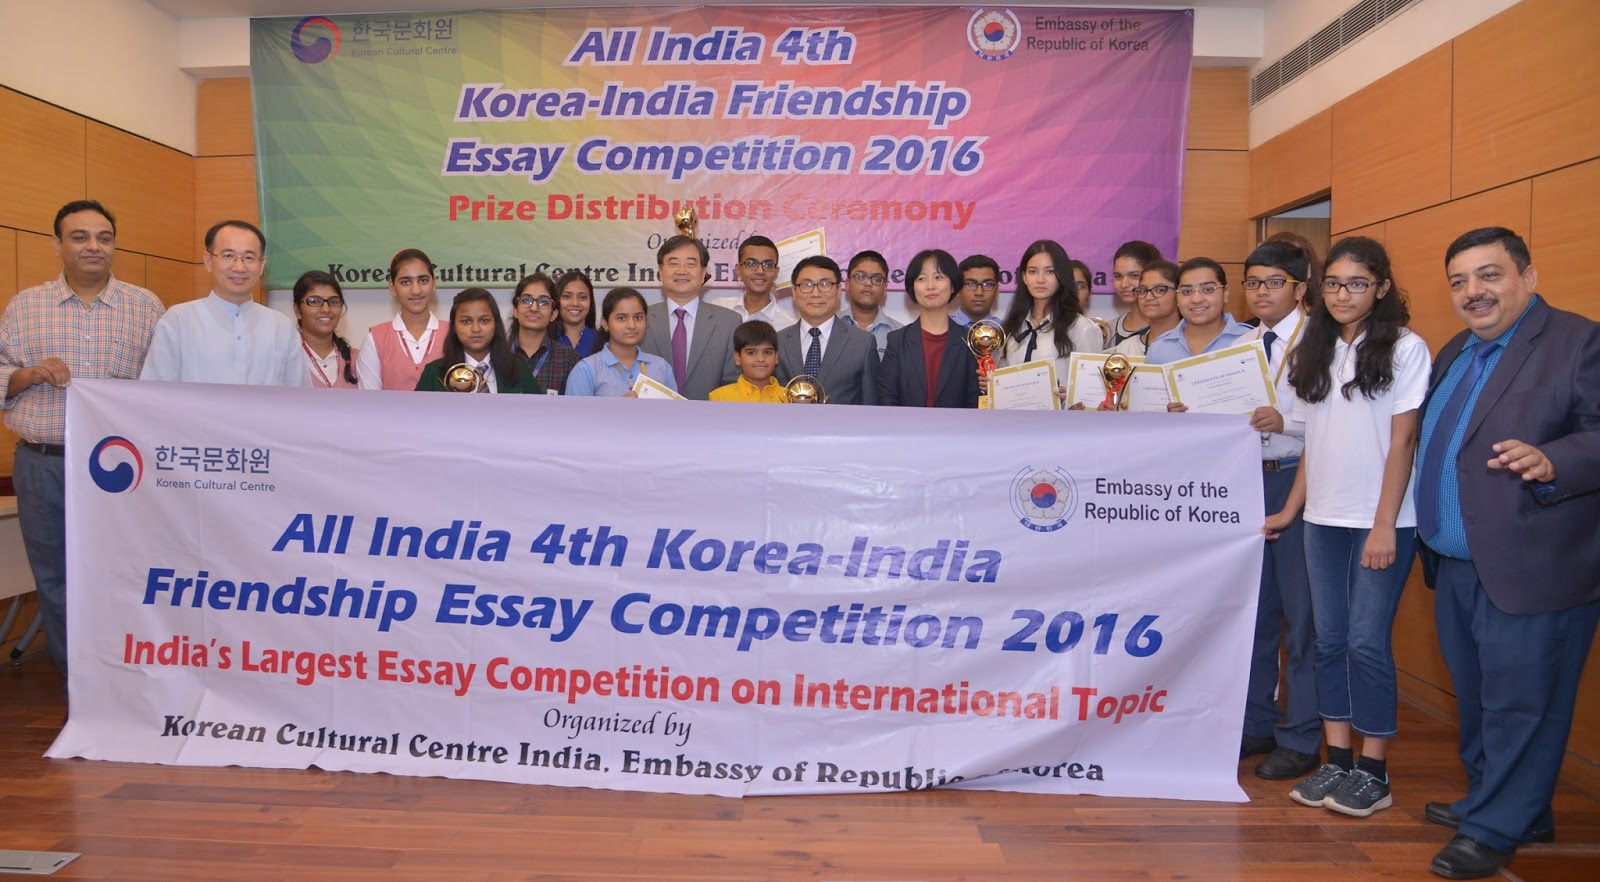 korea friendship essay competition hindustan news a unique and unprecedented project the korea friendship essay competition succeeded in bringing out heart touching expressions in the form of essays